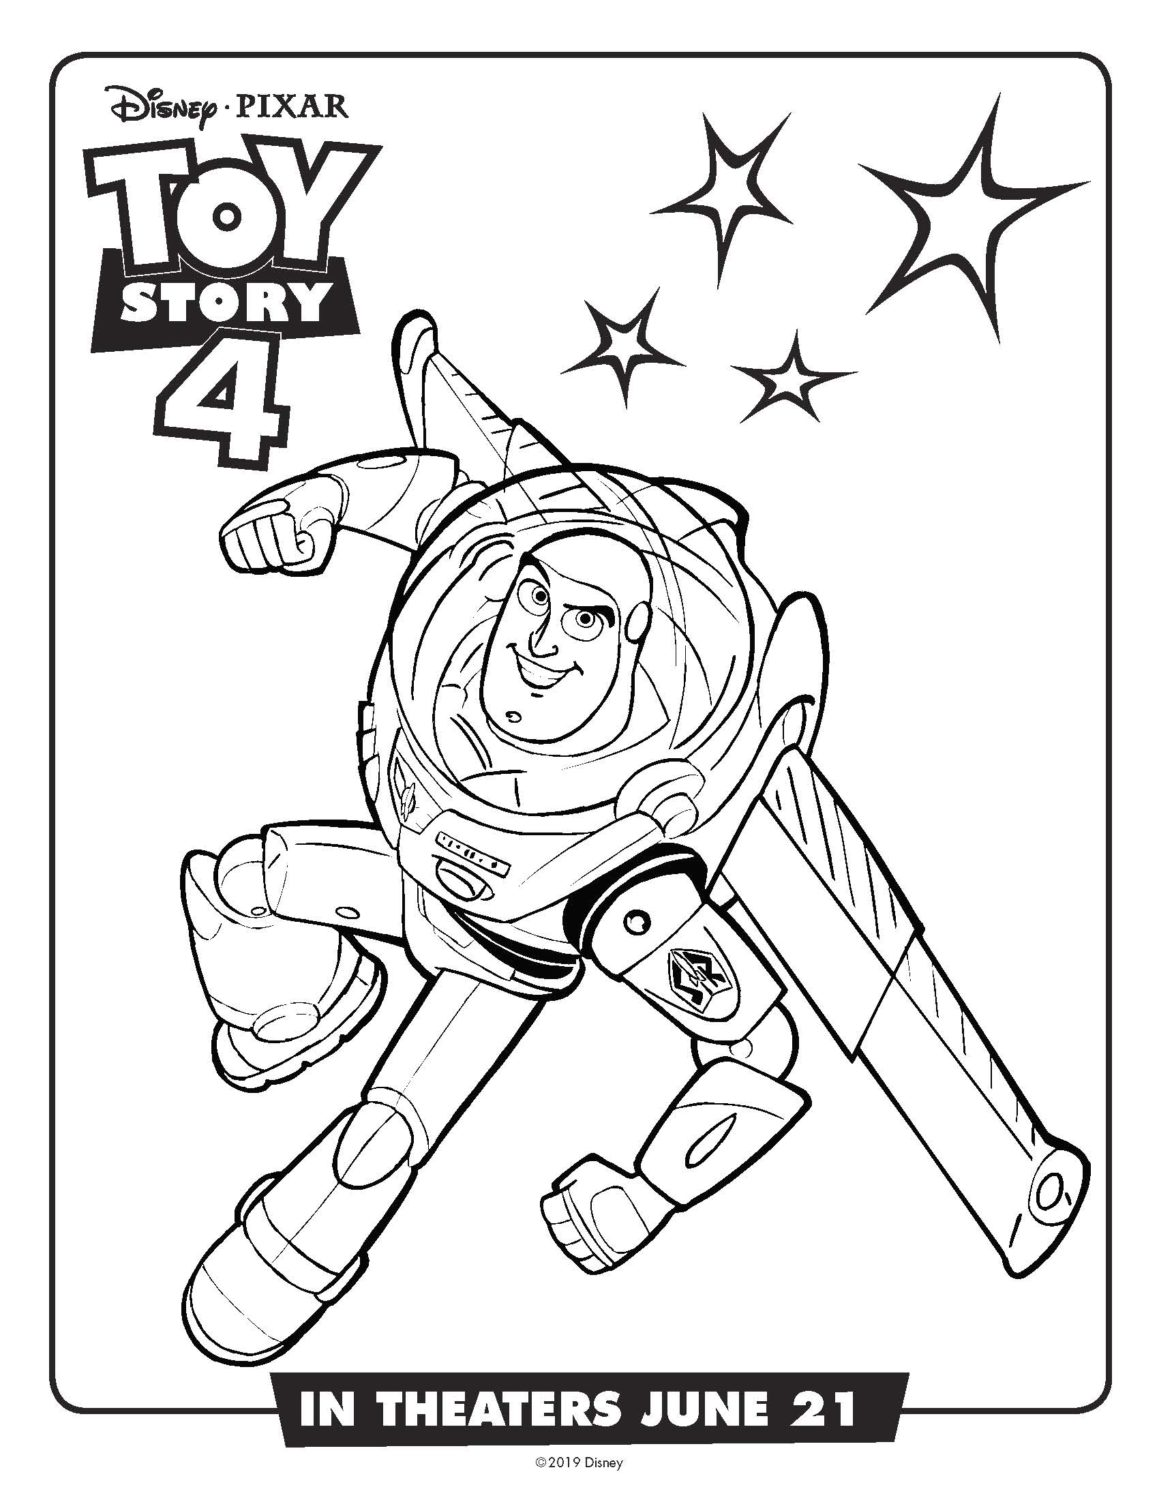 Free Printable Toy Story 4 Coloring Pages And Activity Sheets Crazy Adventures In Parenting